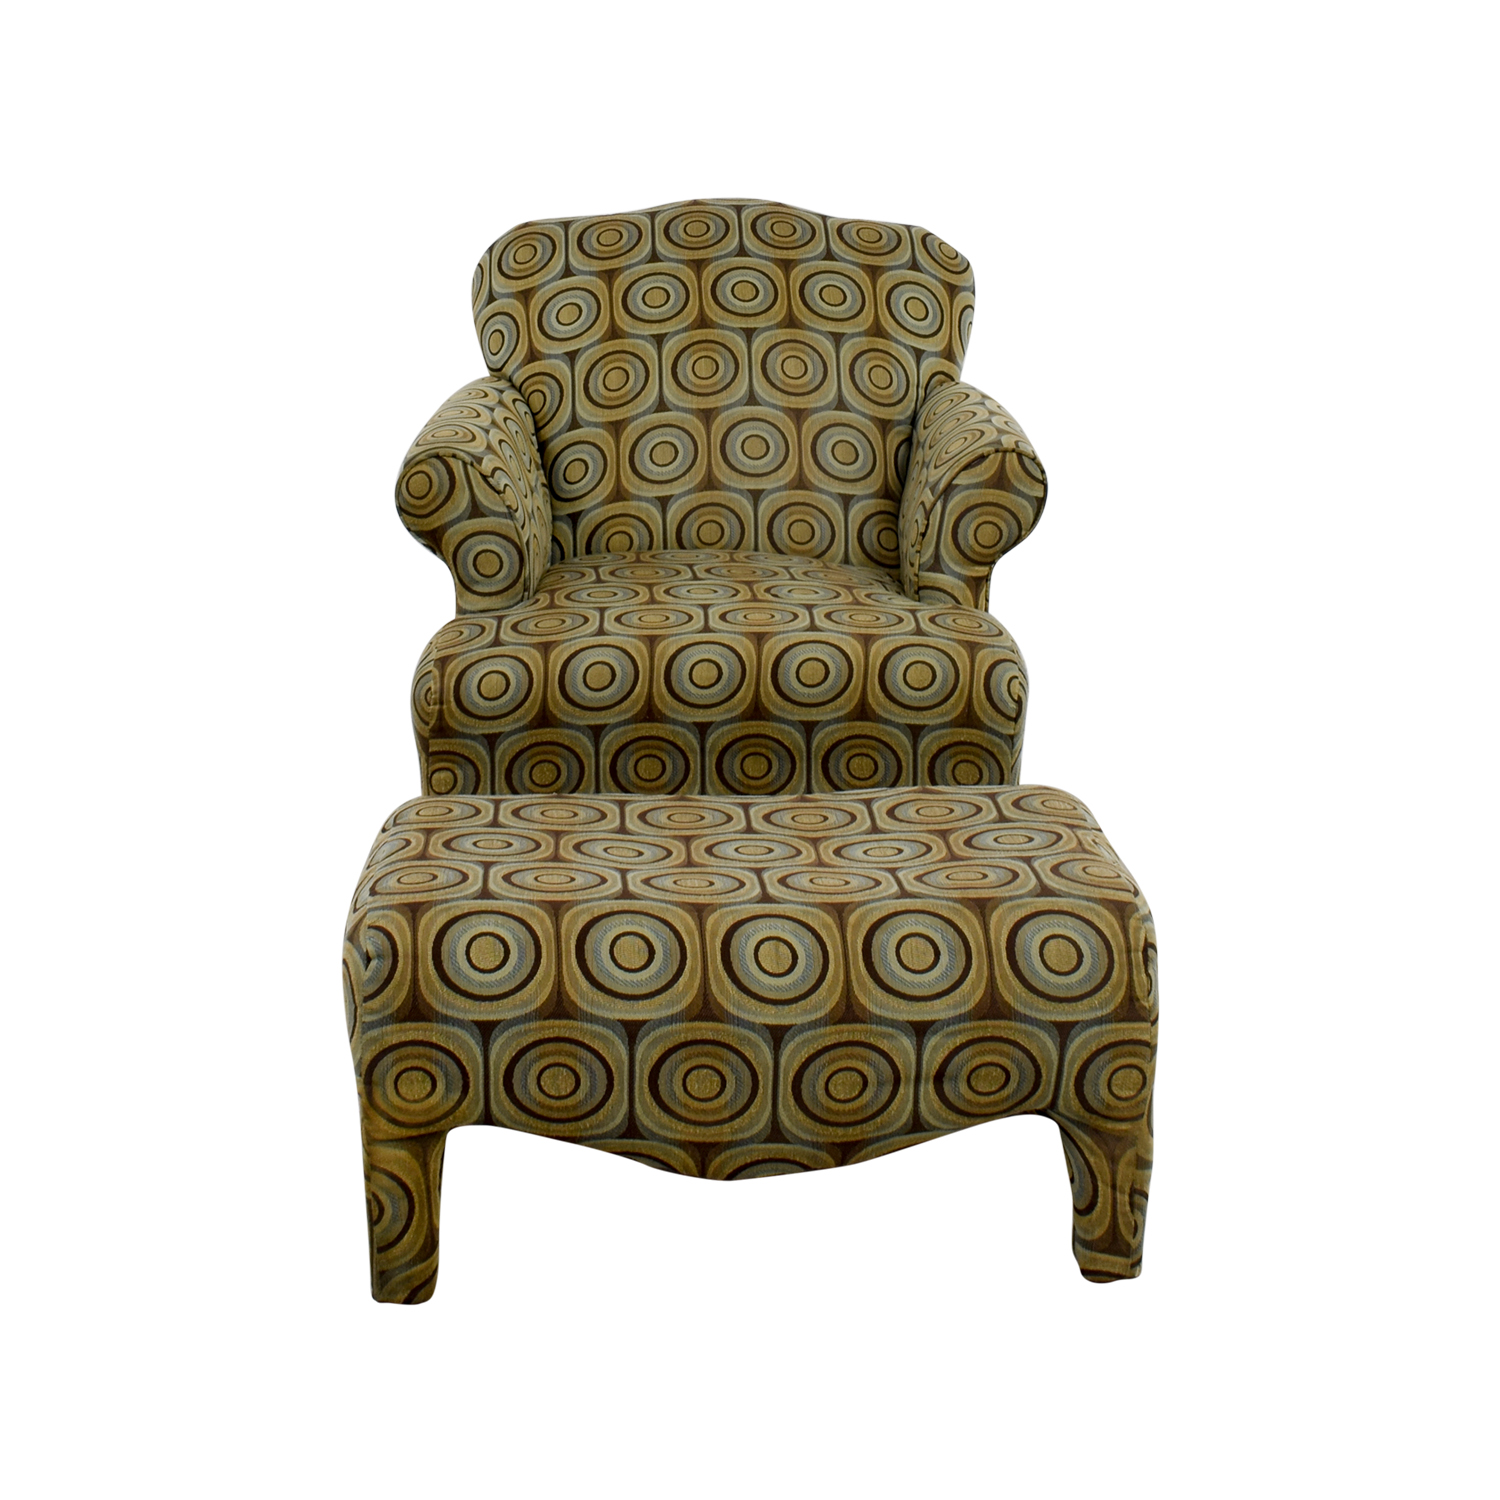 Bobs Furniture Bobs Furniture Chair and Ottoman Accent Chairs